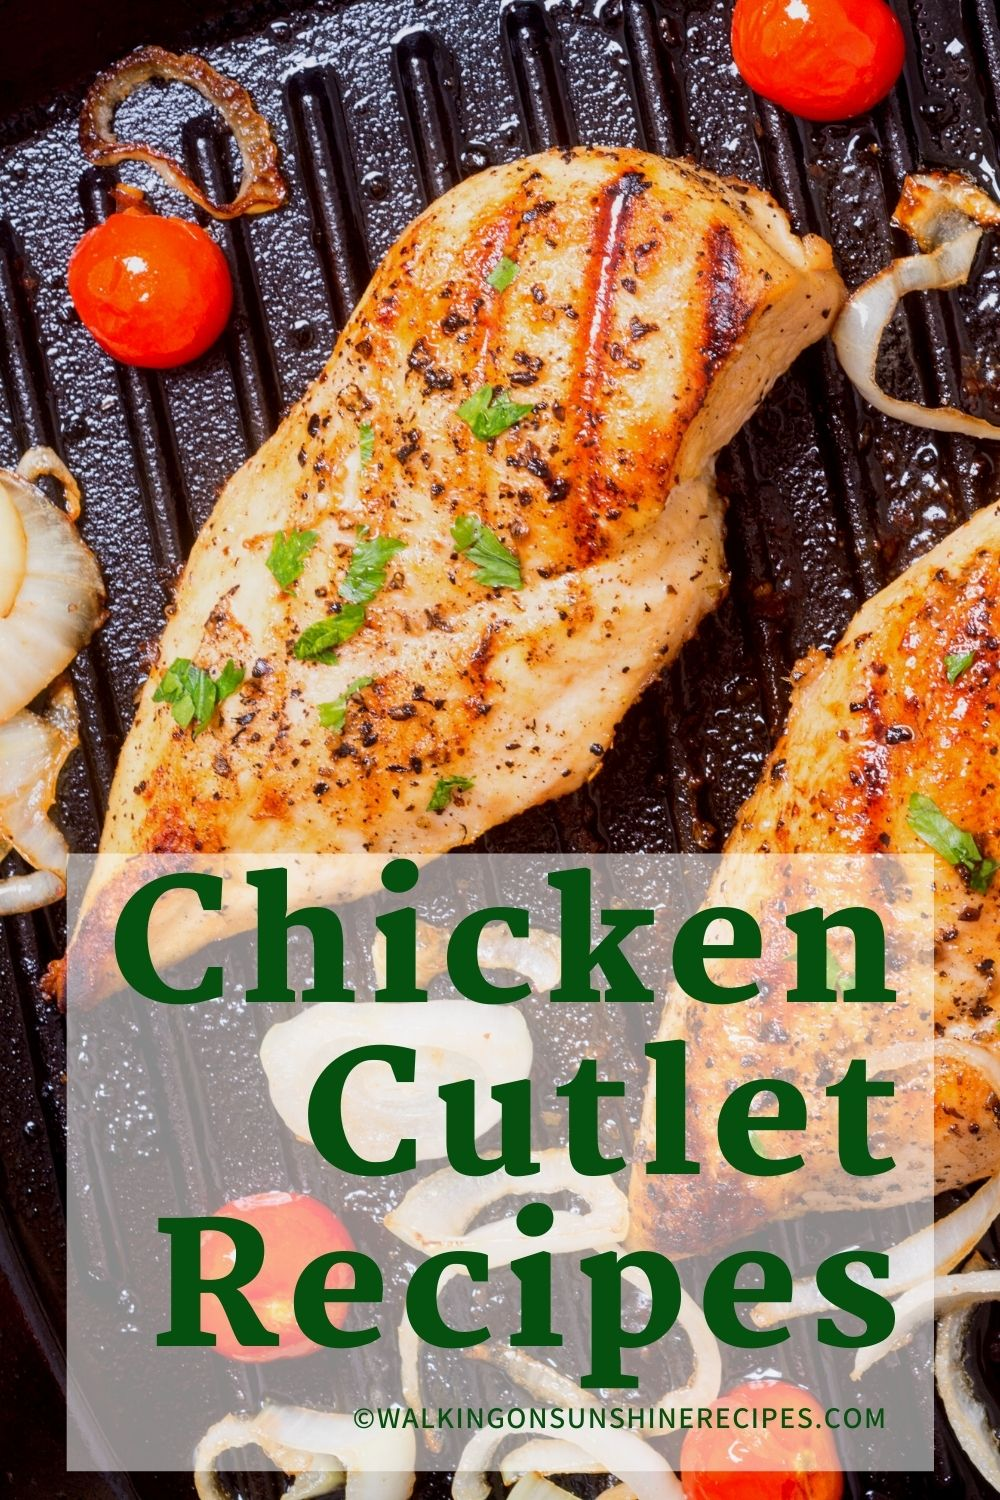 grilled chicken cutlets in cast iron pan.